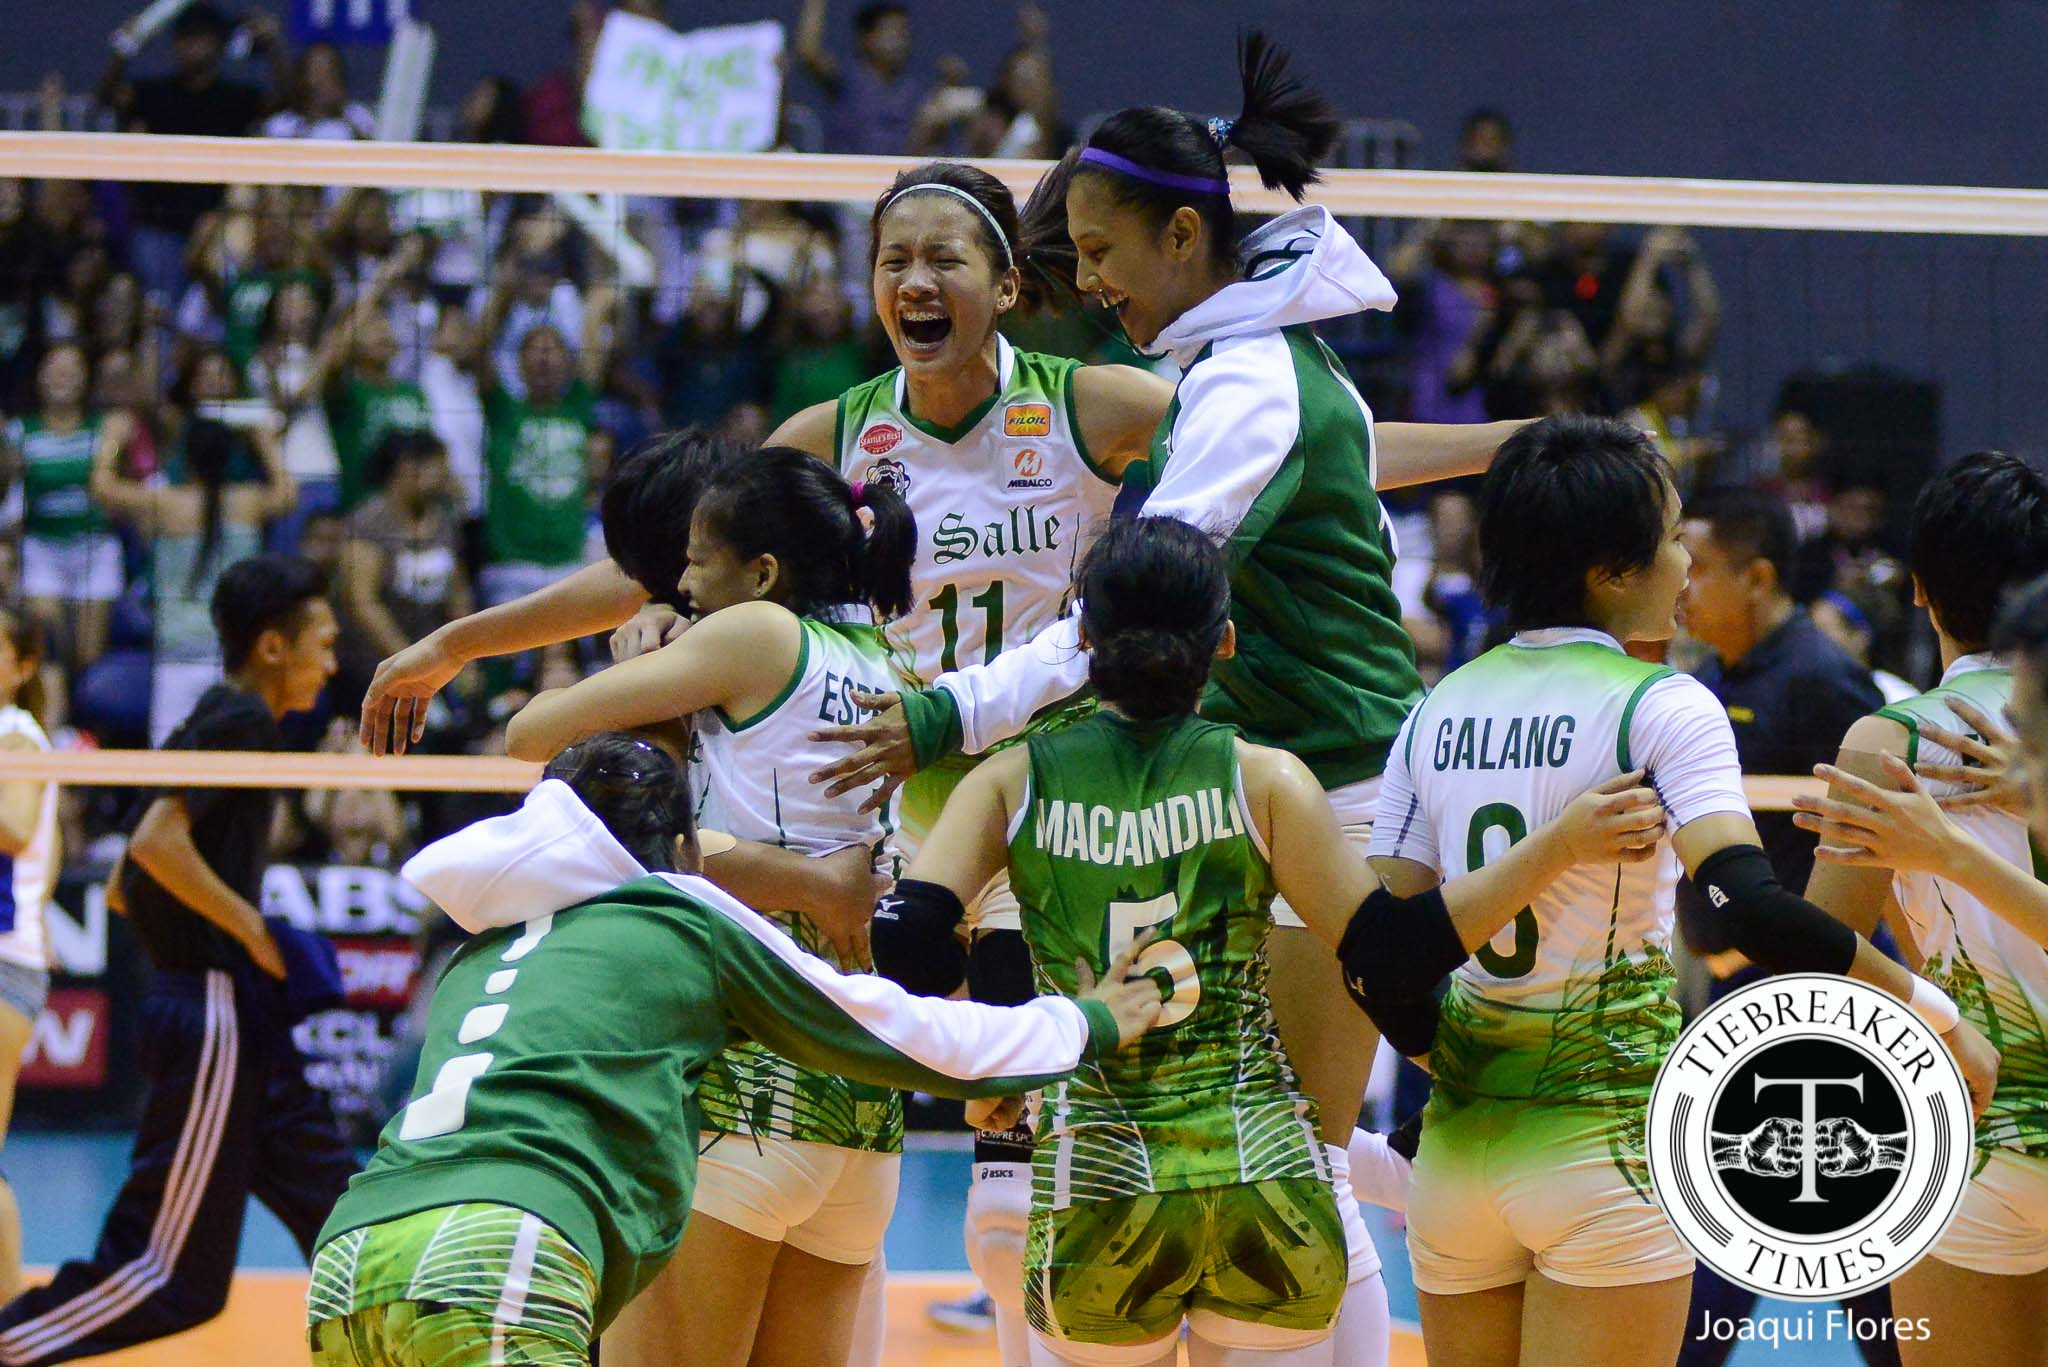 Philippine Sports News - Tiebreaker Times Agony avenged as Lady Spikers dominate Lady Eagles ADMU DLSU News UAAP Volleyball  UAAP Season 78 Women's Volleyball UAAP Season 78 Mika Reyes Kim Fajardo Jia Morado Jho Maraguinot DLSU Women's Volleyball Ateneo Women's Volleyball Ara Galang Alyssa Valdez